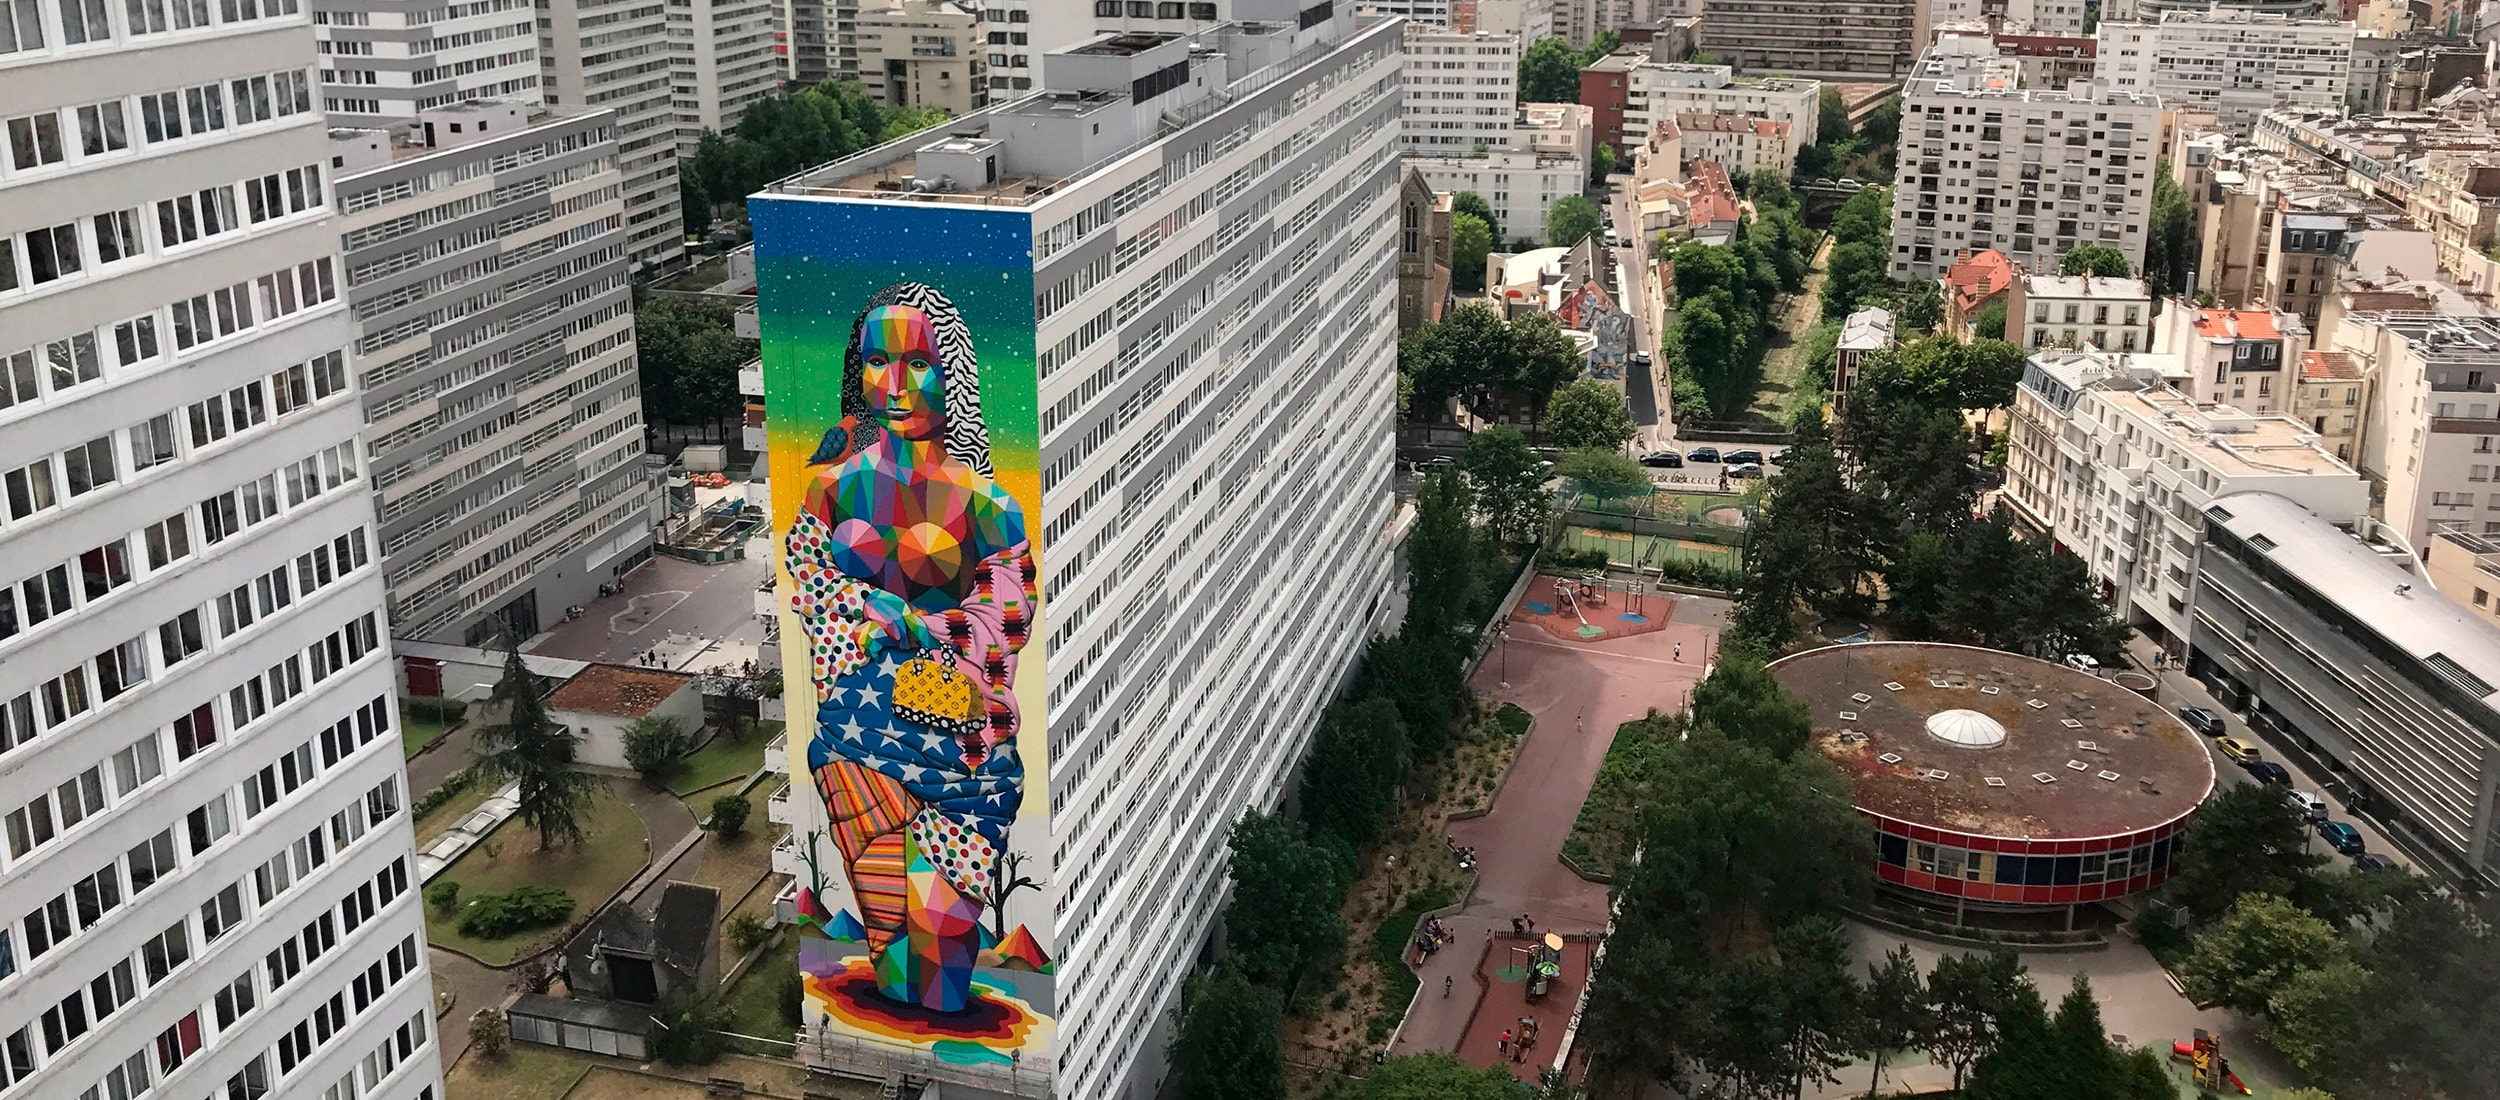 The New Gioconda - Okuda San Miguel - Ink and Movement